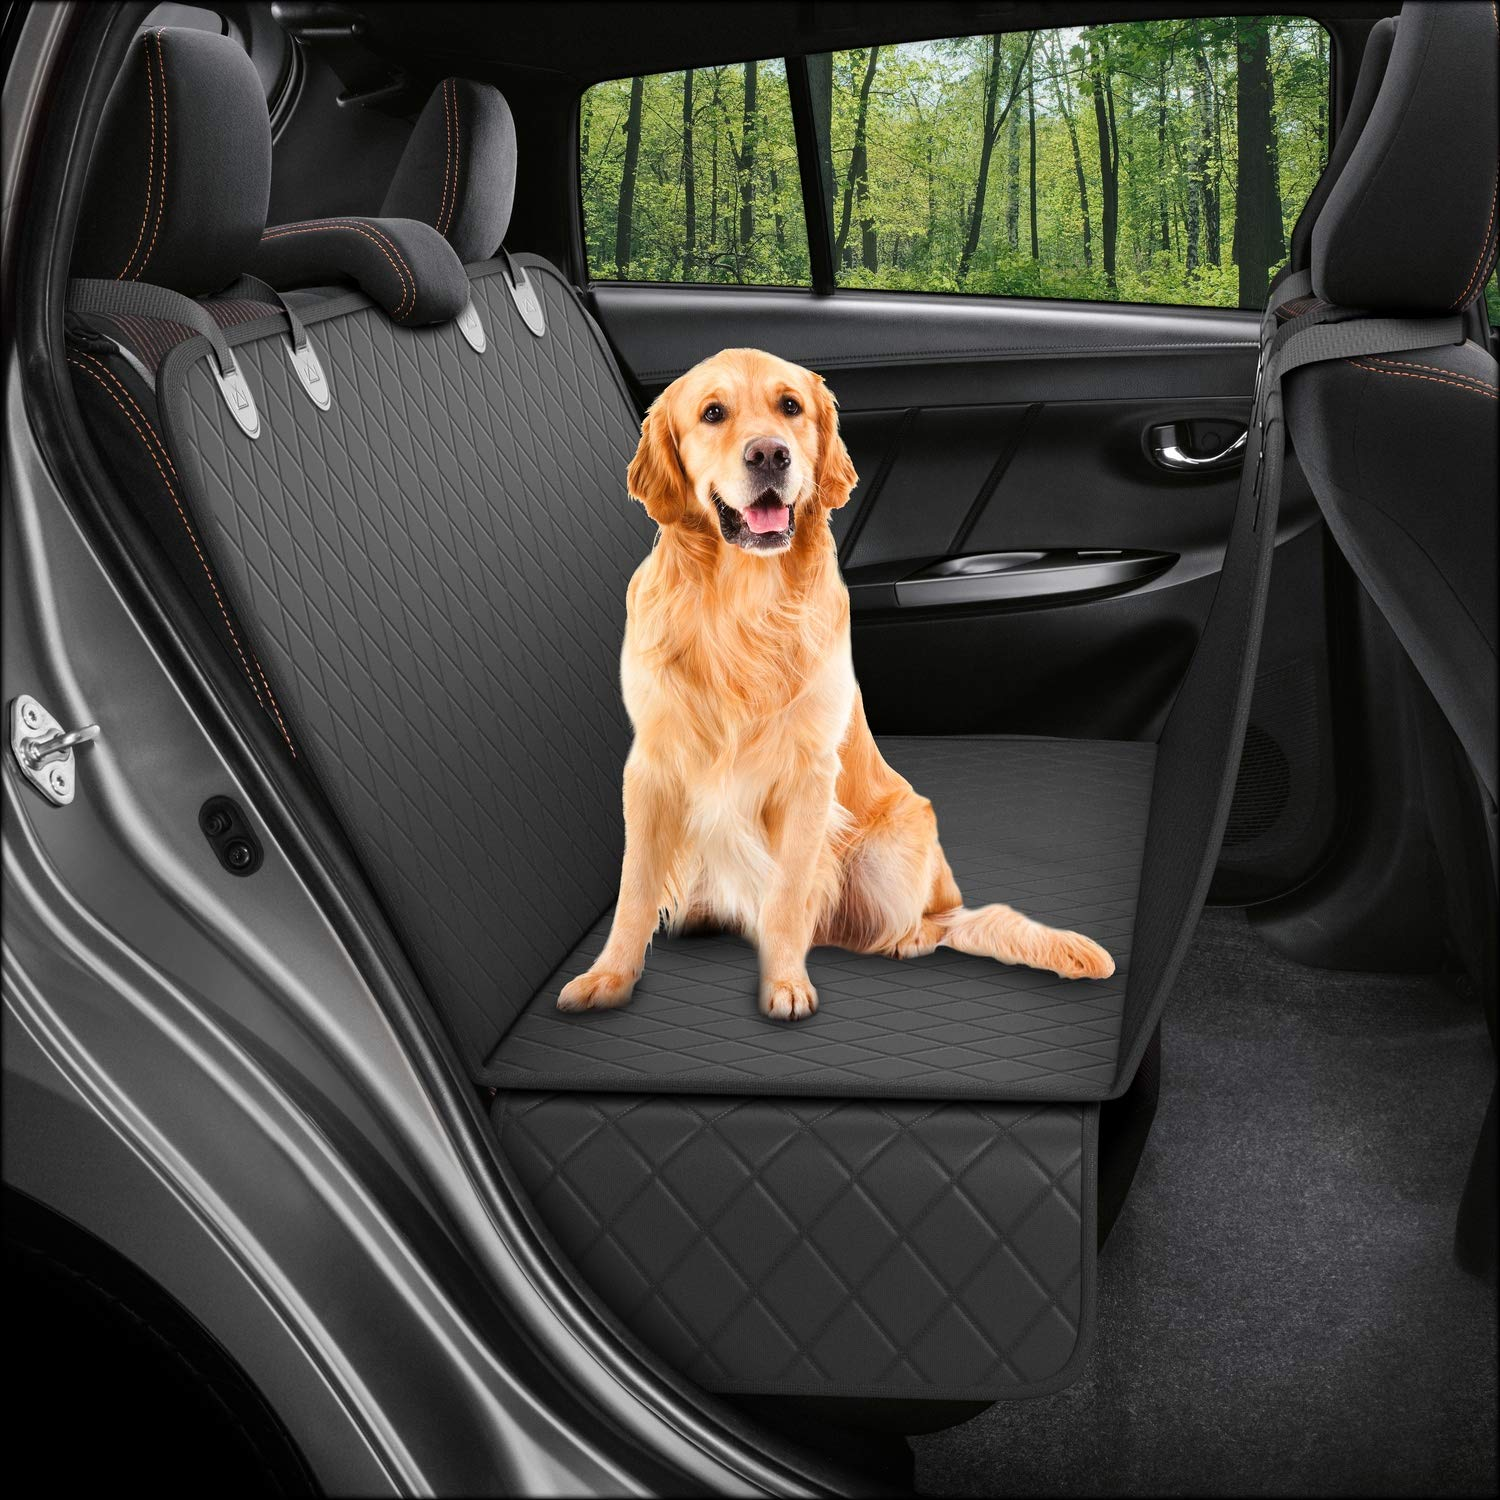 Dog Back Seat Cover Protector Waterproof Scratchproof Nonslip Hammock for Dogs Backseat Protection Against Dirt and Pet Fur Durable Pets Seat Covers for Cars Trucks SUVs (Black) by Active Pets